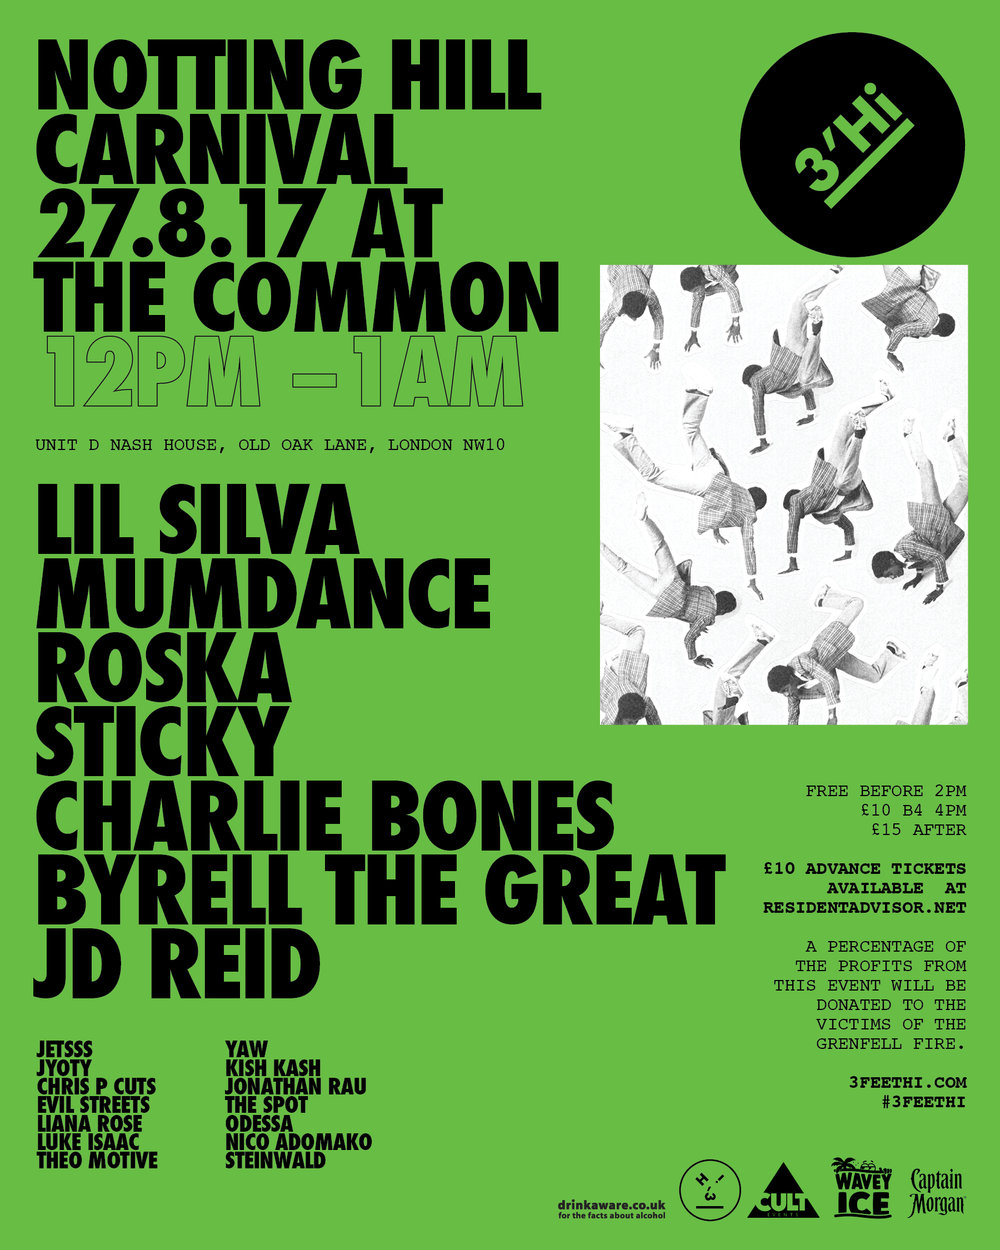 CARNIVAL_FB_PAGE_FLYERS_FULL2.jpg